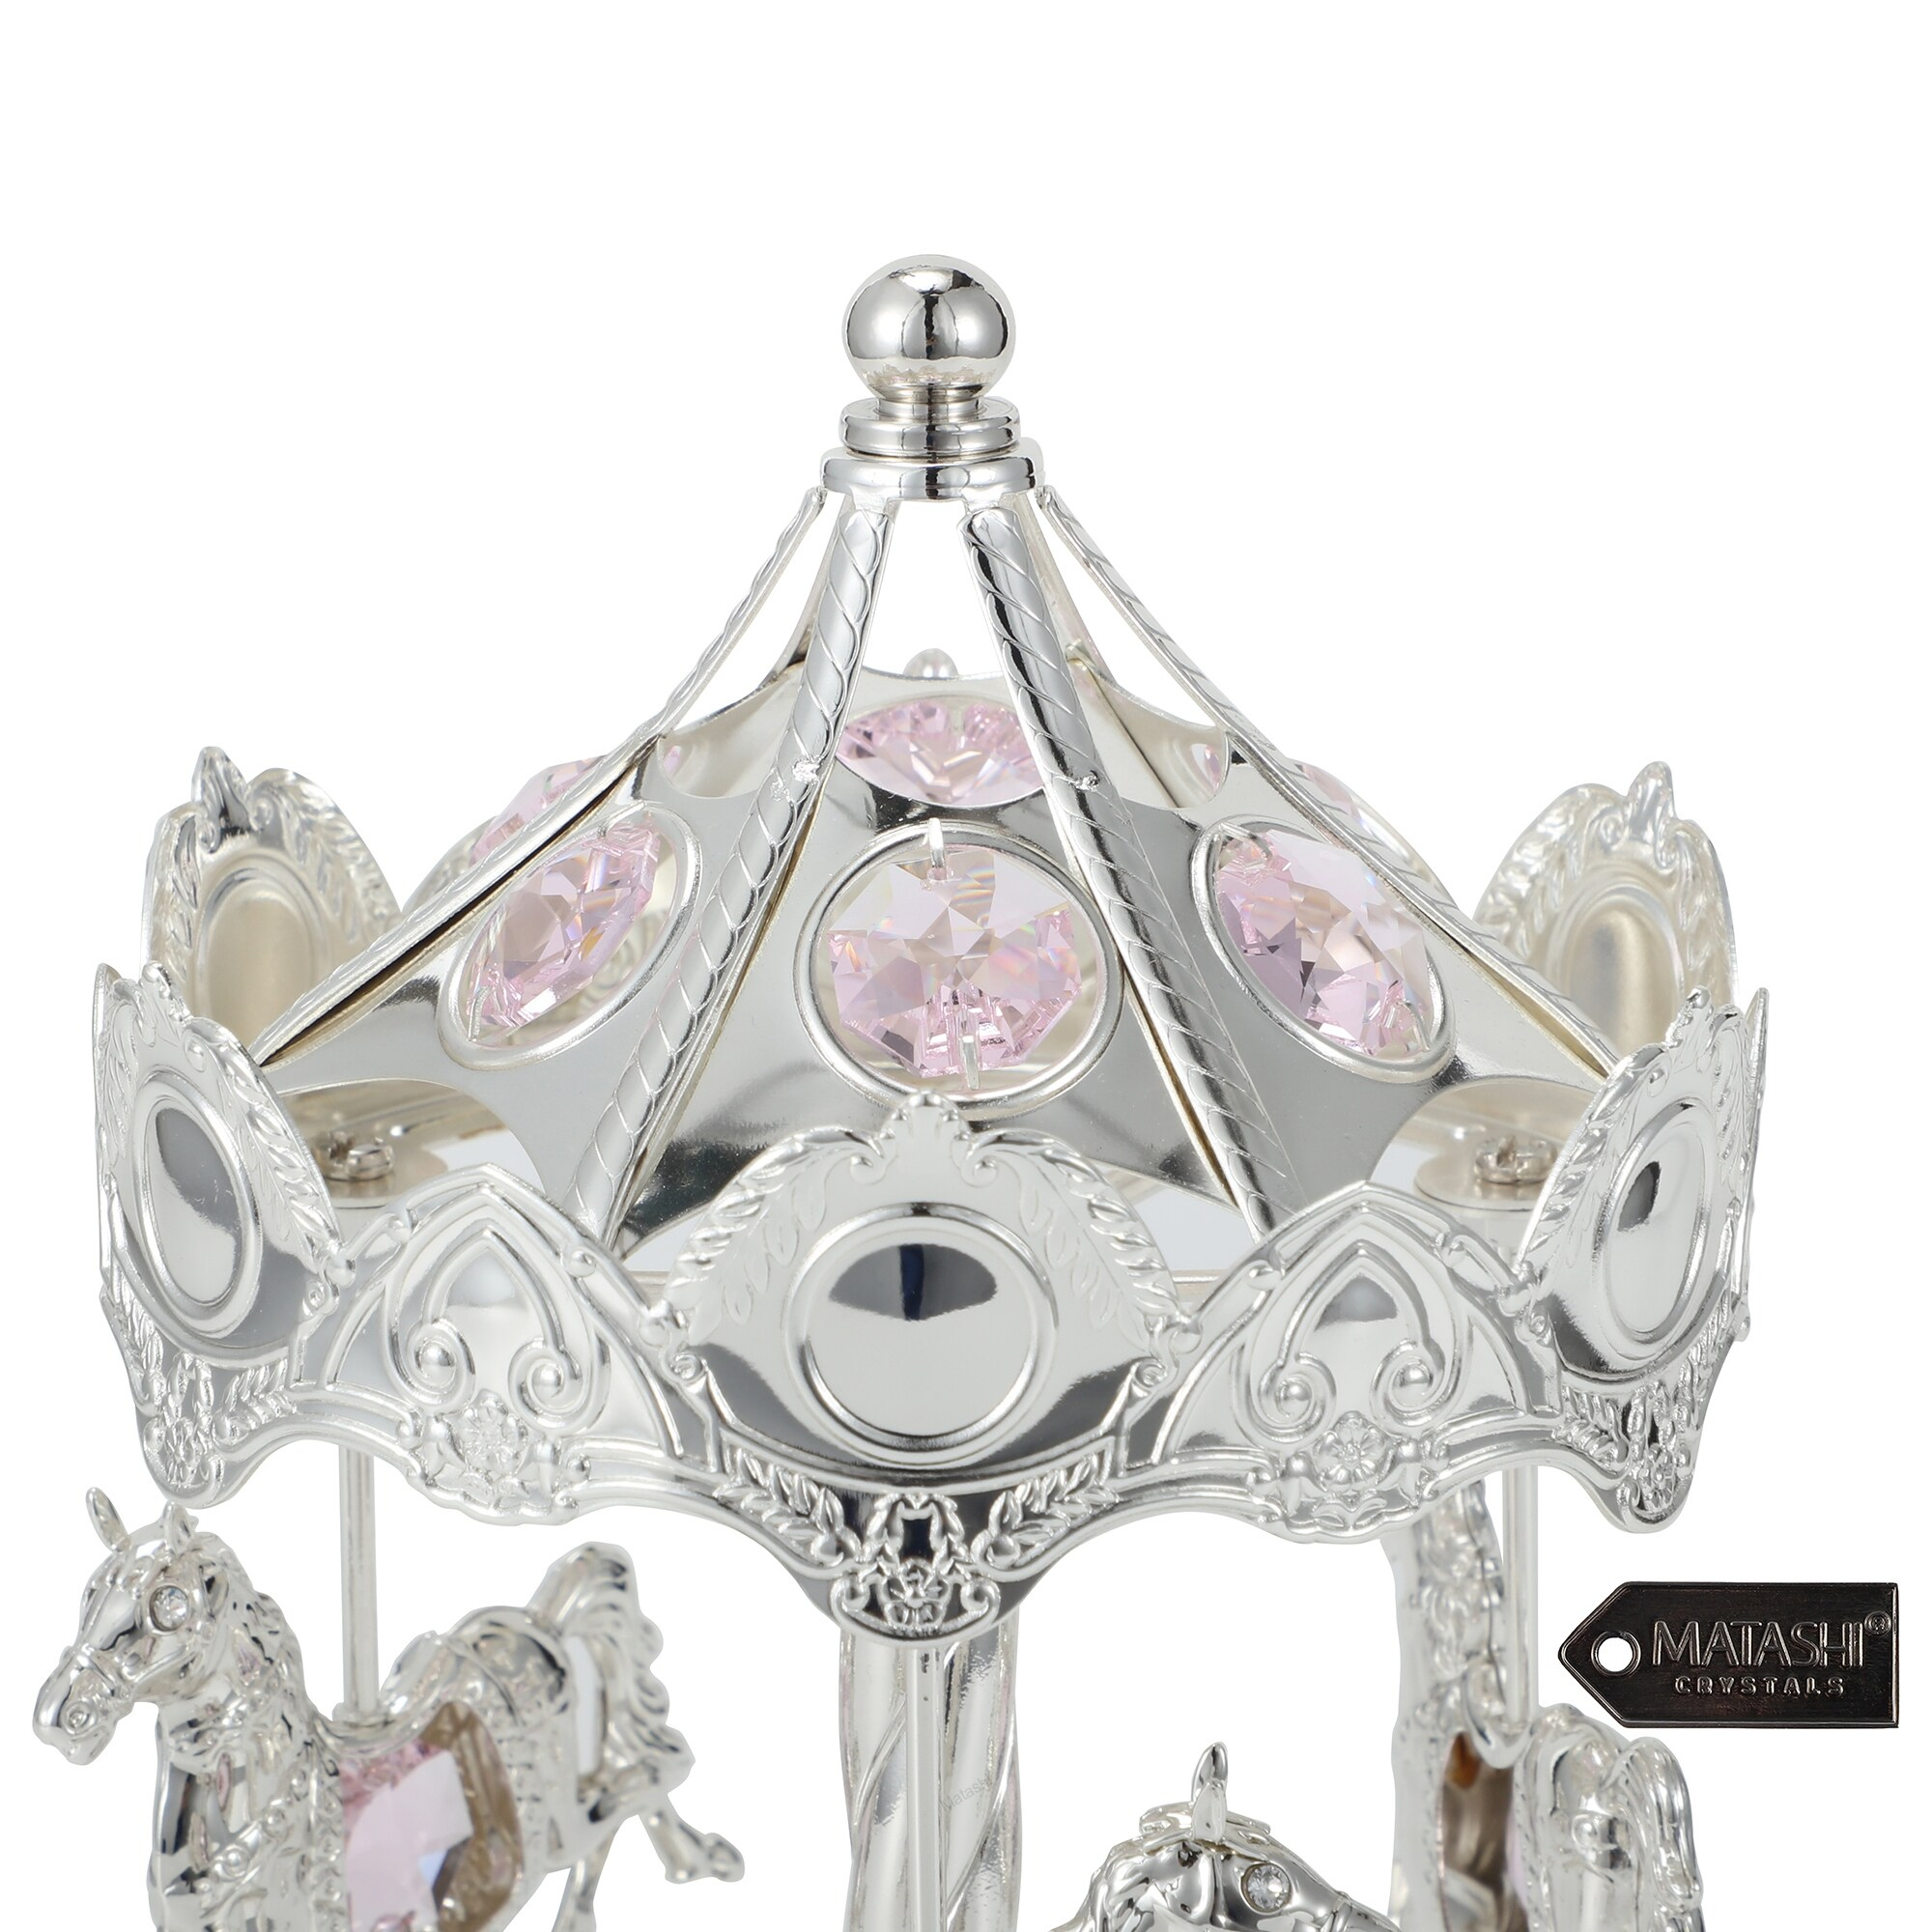 Matashi Silver Plated Carousel Horse Music Box Made With Genuine Pink Matashi Crystals Mctmsc3800 Overstock 10703509